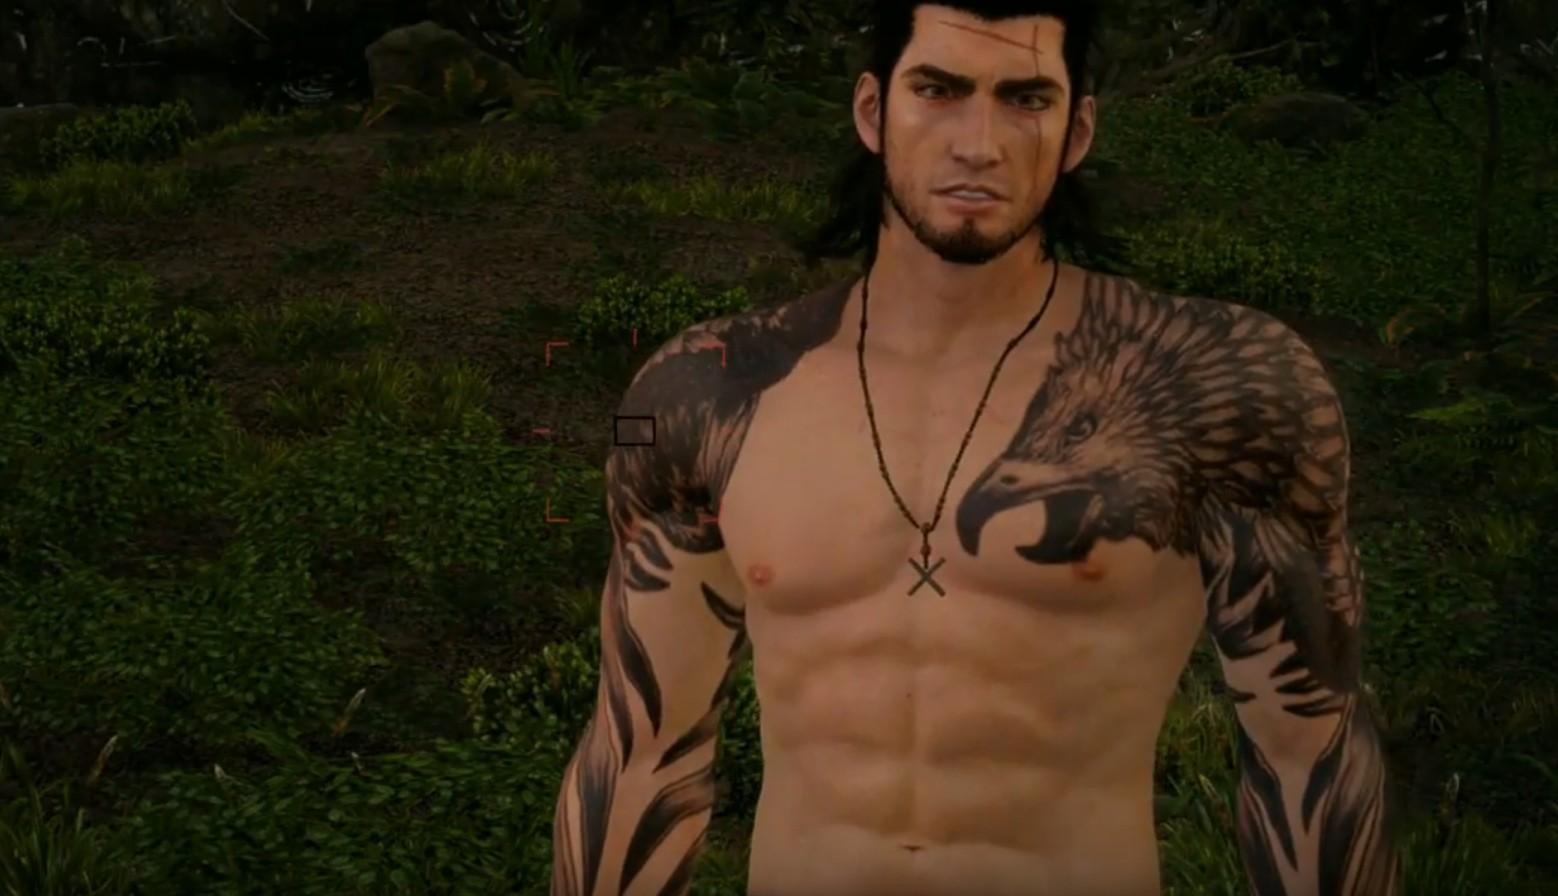 Final Fantasy XV Episode Gladiolus DLC Unlocks Sexy